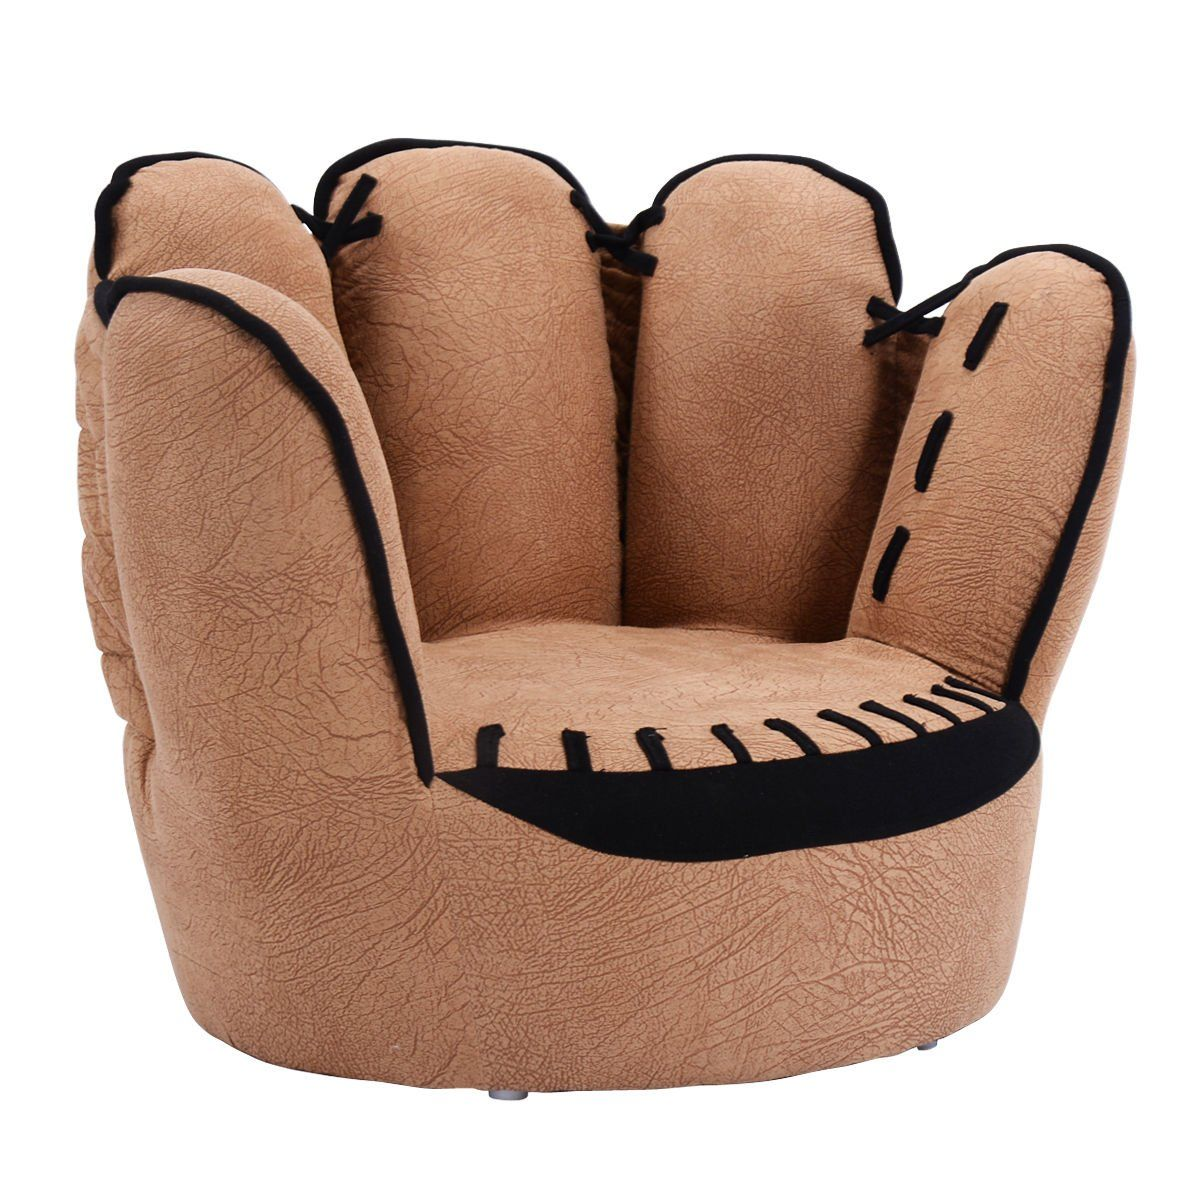 Costzon Kids Sofa Chair Finger Style Toddler Armchair Living Room Seat Learn Extra By Visiting The Picture Link Toddler Armchair Kids Sofa Kids Sofa Chair #toddler #chair #for #living #room